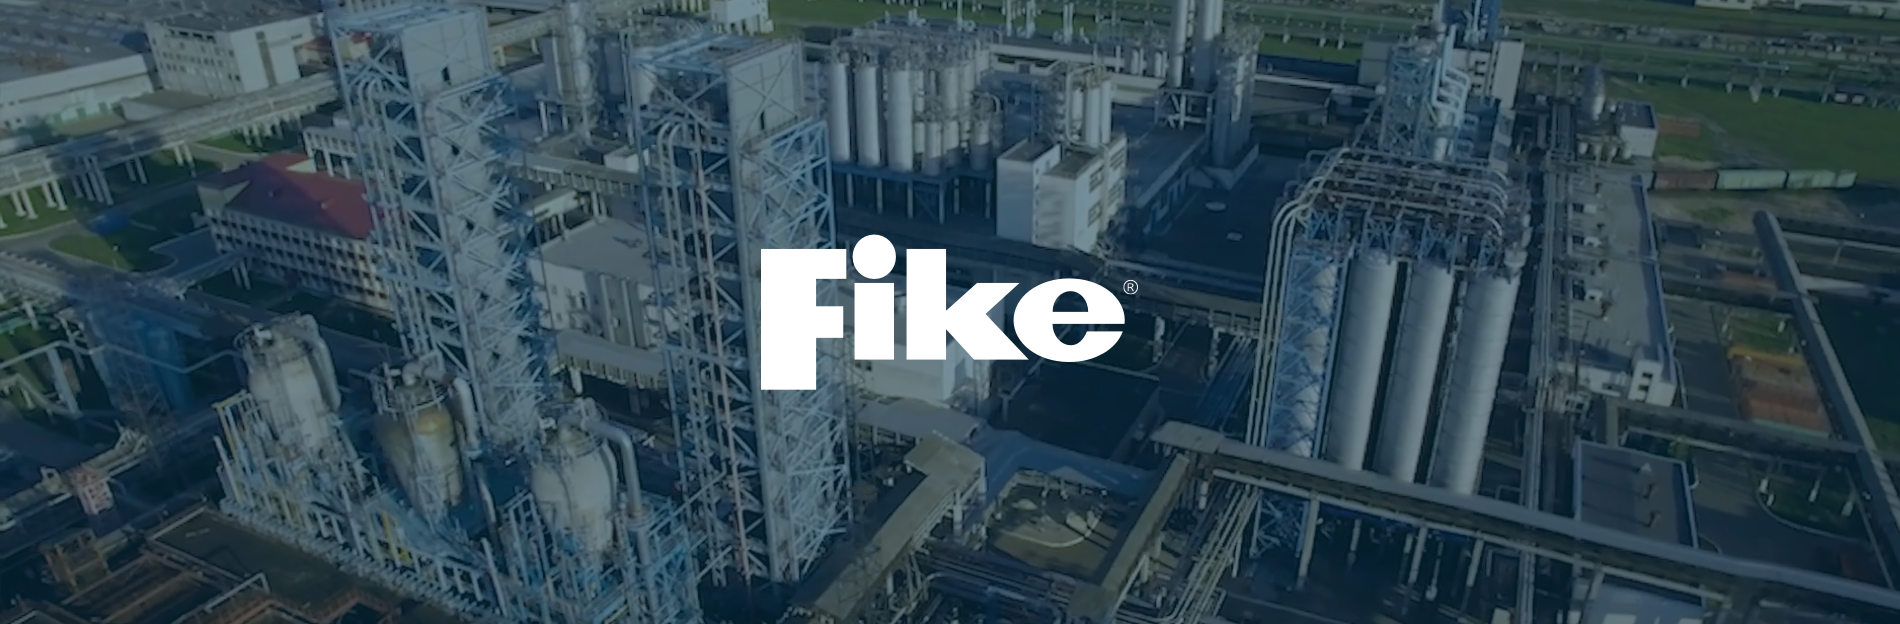 Fike logo on industrial background